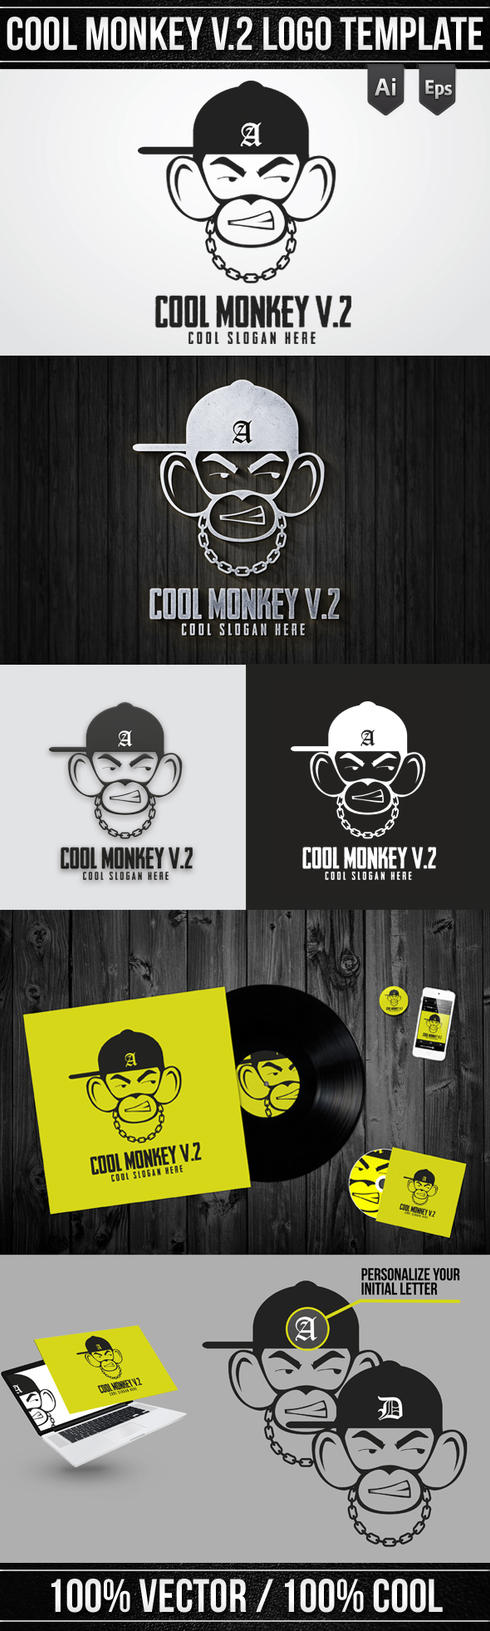 Cool Monkey V. 2 by Giunina